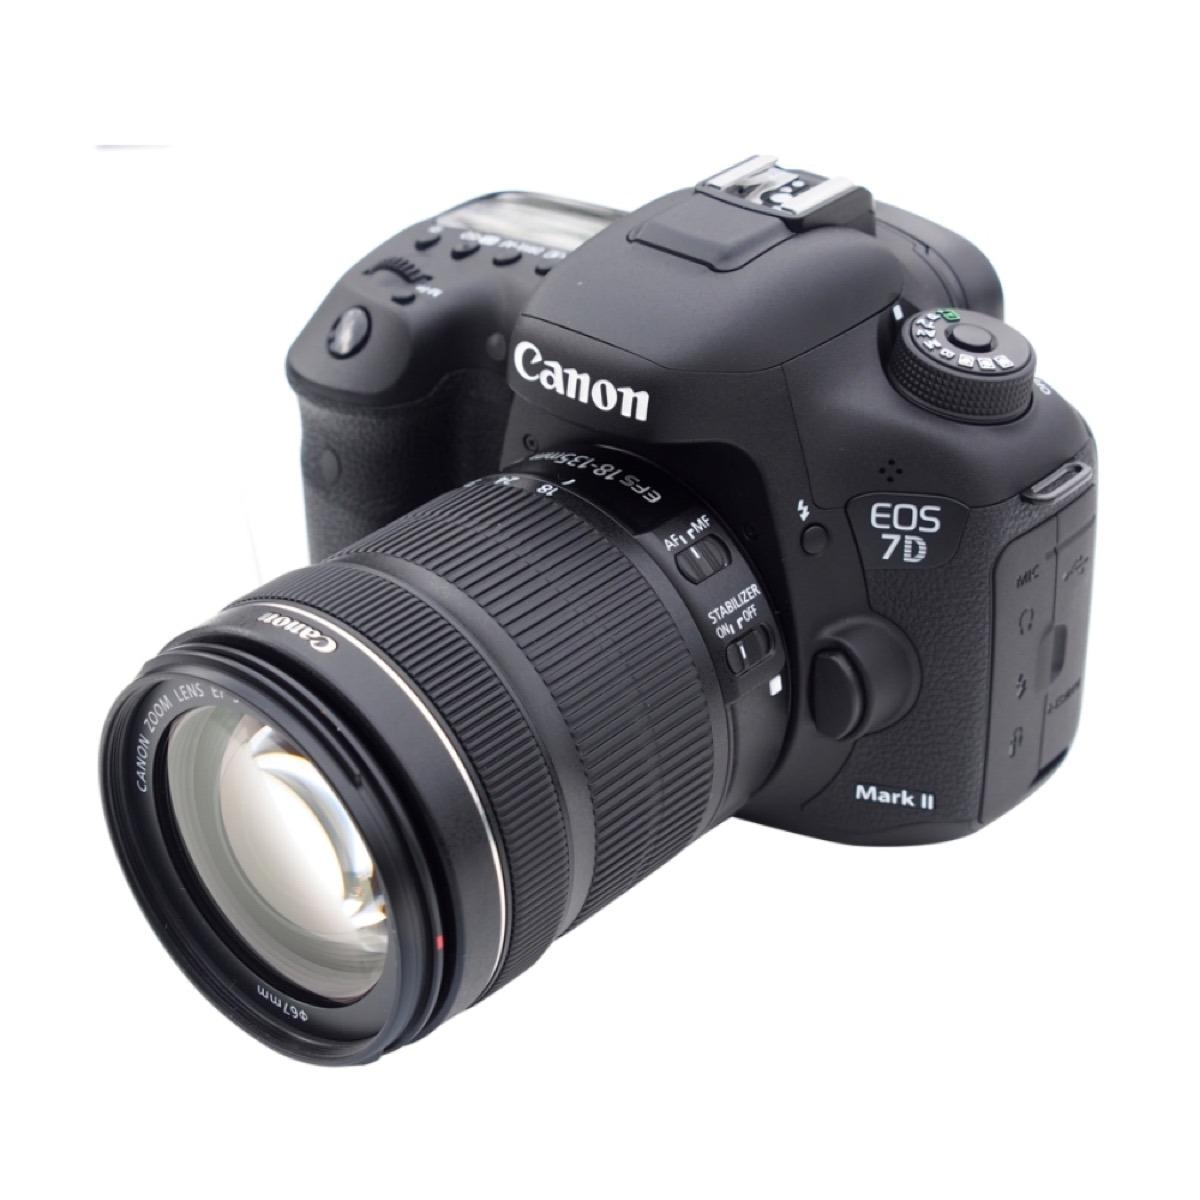 Buy Affordable Canon Dslr Cameras Eos 700d Kit 18 135mm F 35 56 Is Stm 7d Mark Ii With